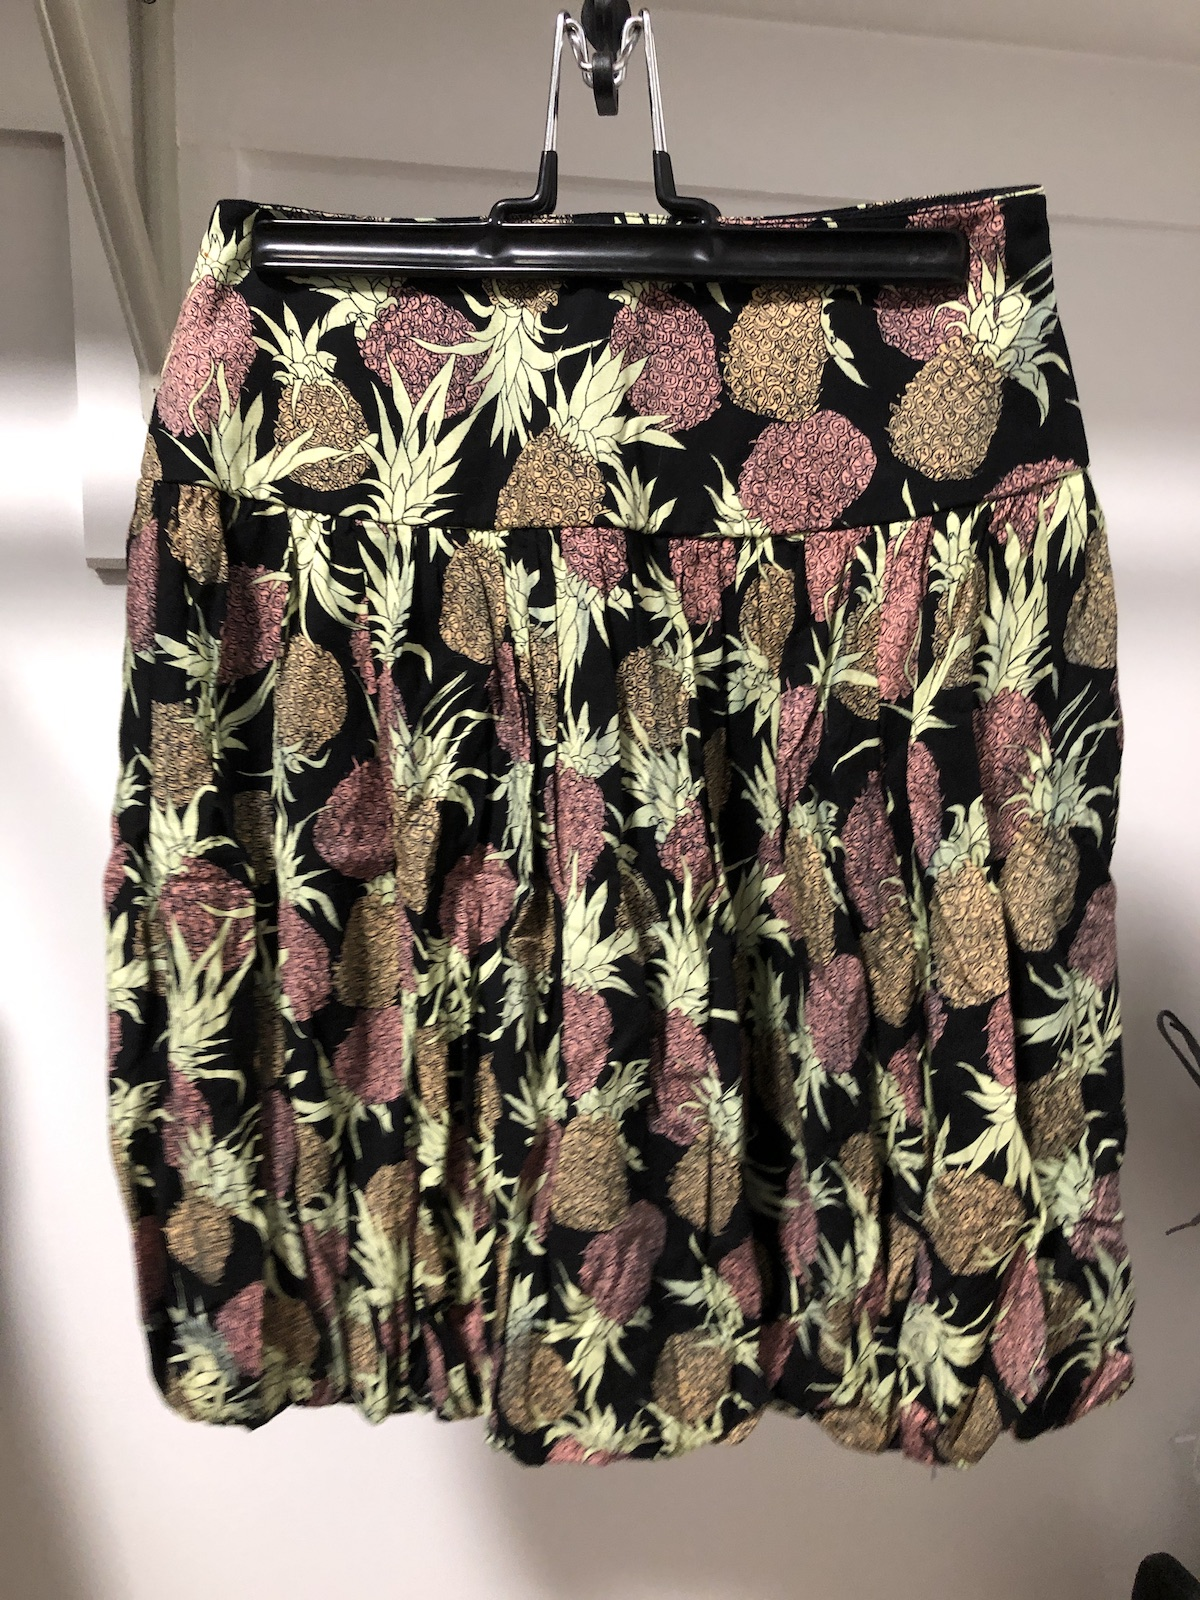 I got this Nicole Miller skirt for  10.99 on thredUP vs. estimated retail  of  265 (a  254.01 savings). It has pineapples on it! e45307970b43